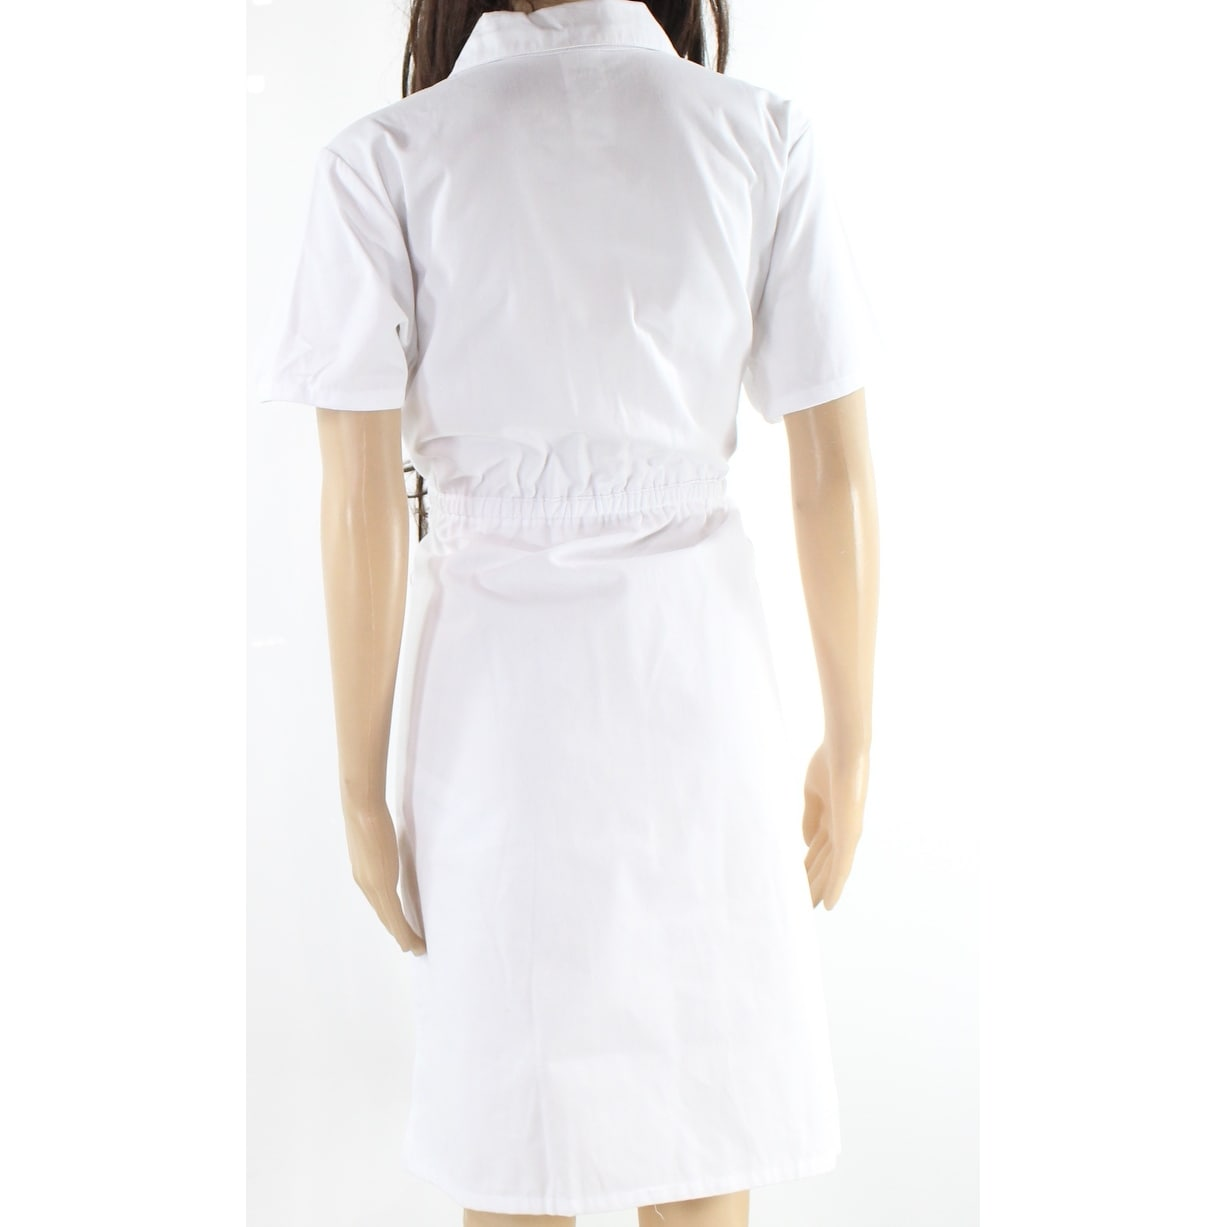 7f9dee9daab Shop Dickies White Women's Size Small S Button Down Scrub Shirt Dress -  Free Shipping On Orders Over $45 - Overstock - 26926901